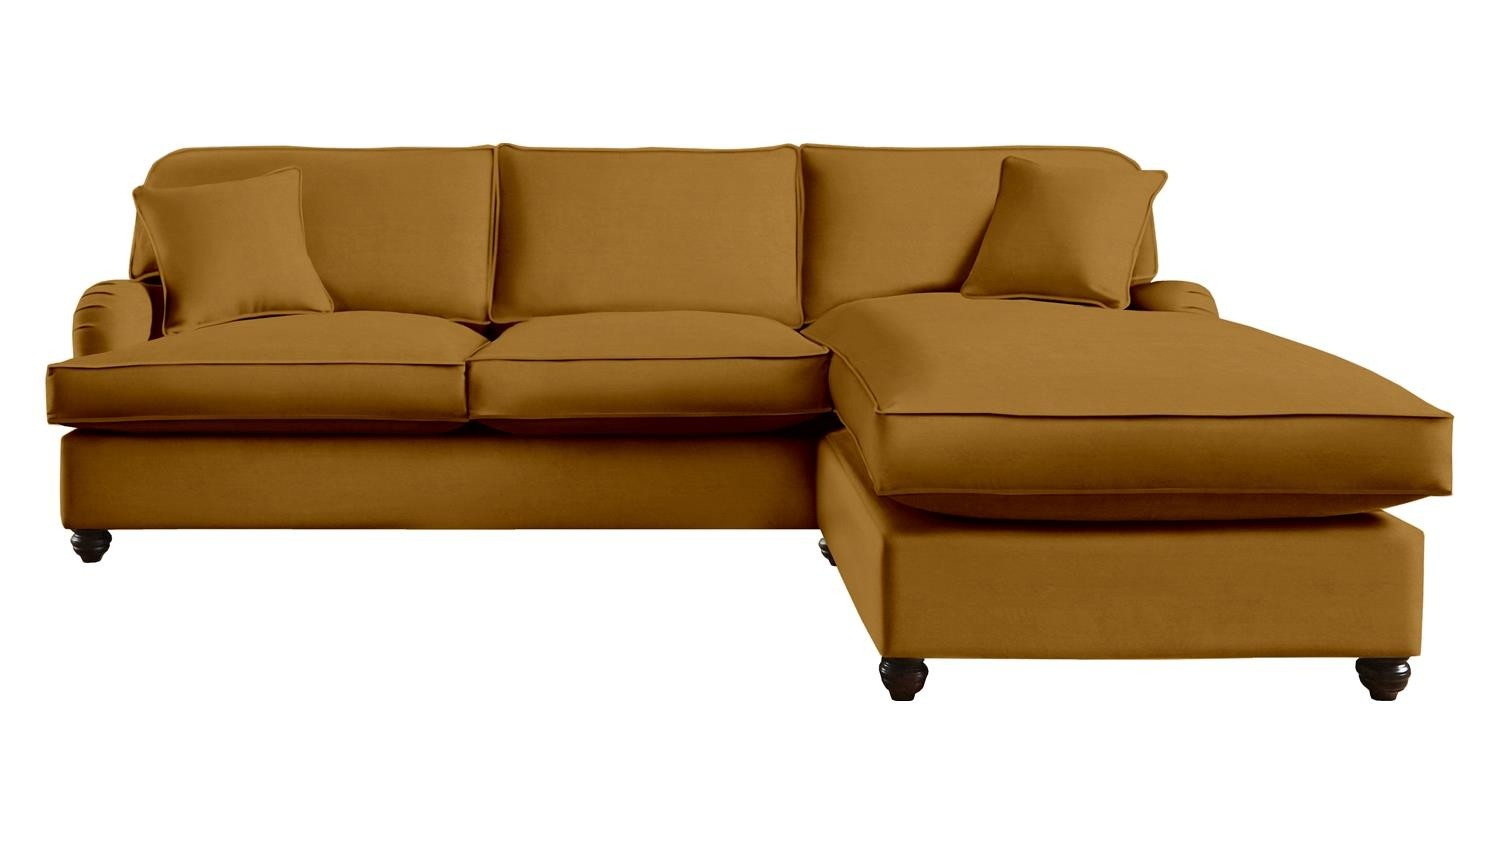 The Larkhill 5 Seater Chaise Sofa Bed